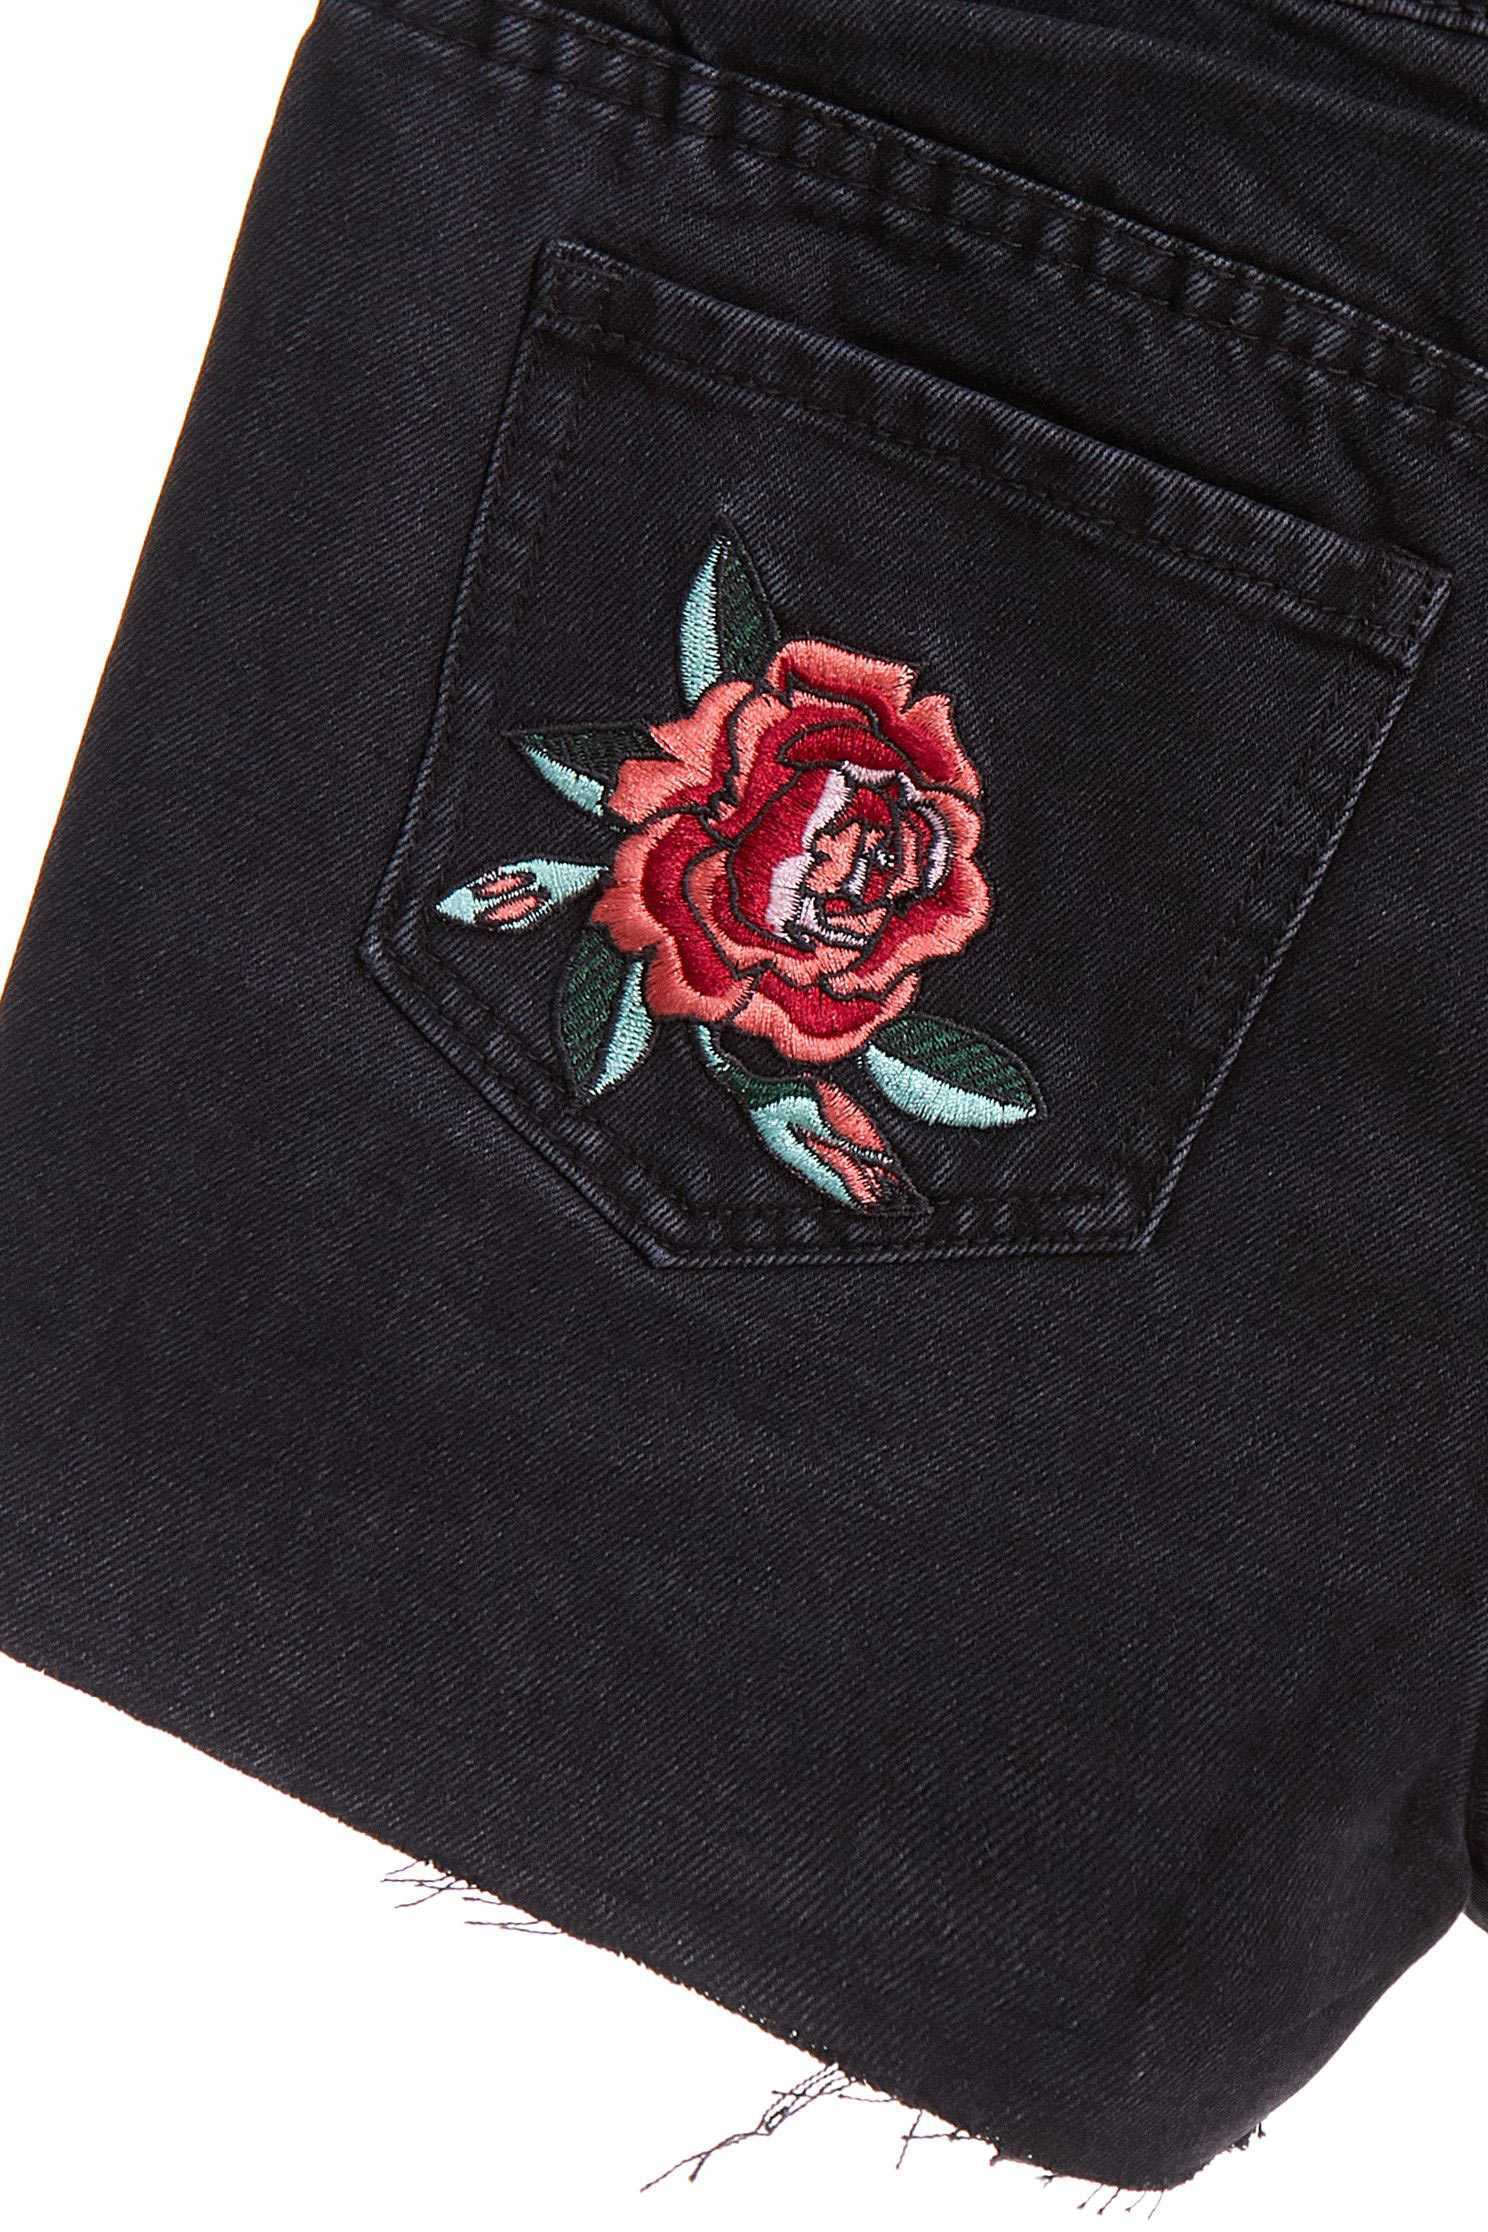 Fahsion street shorts,tanning,embroidery,cowboy,sdenimshorts,jeans,shorts,blackjeans,blackpants